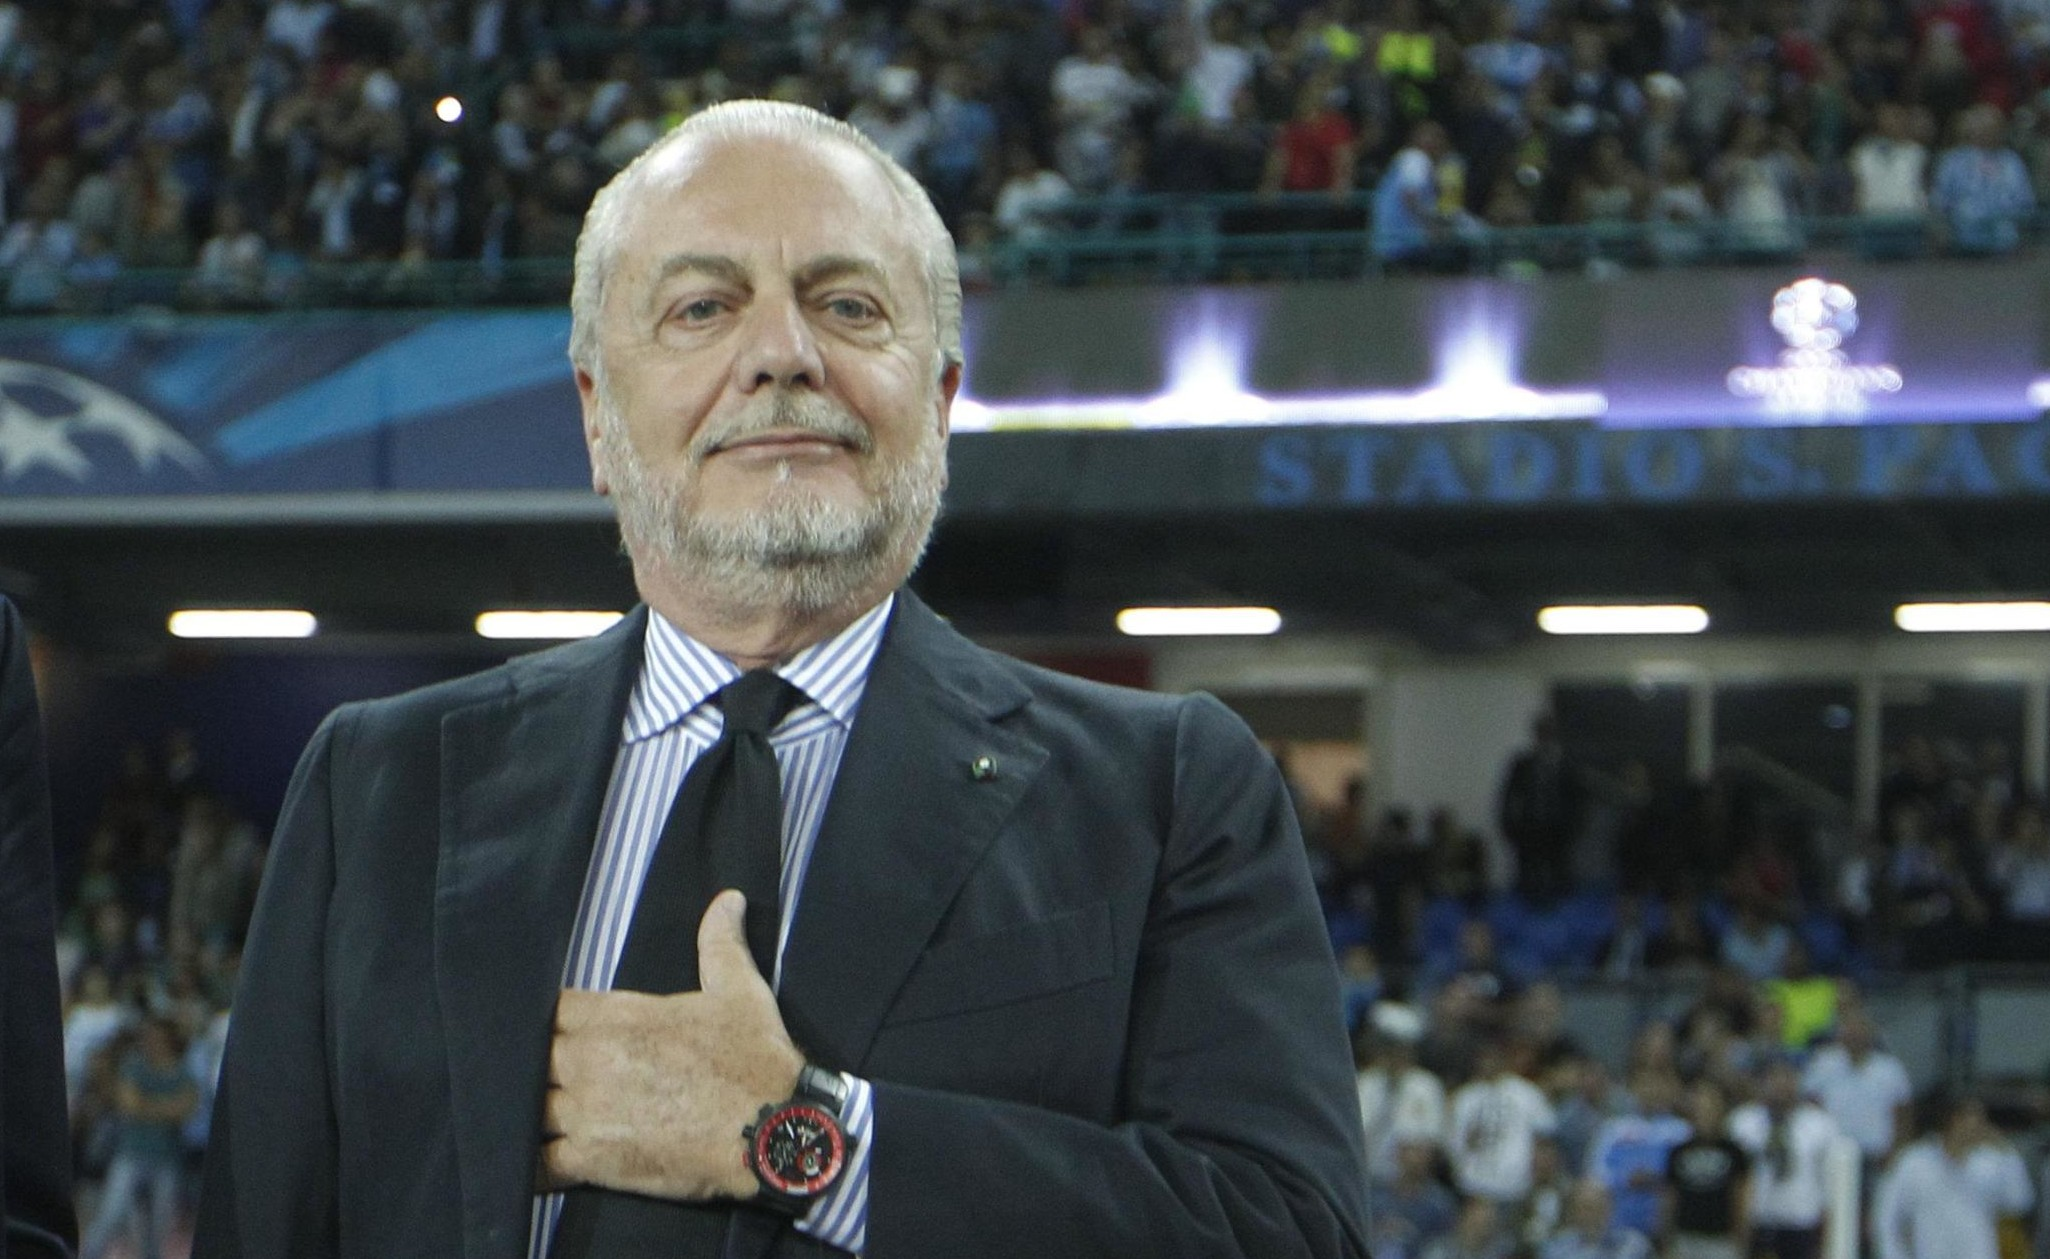 CLAMOROSA decisione di De Laurentiis dopo i fatti di Madrid!